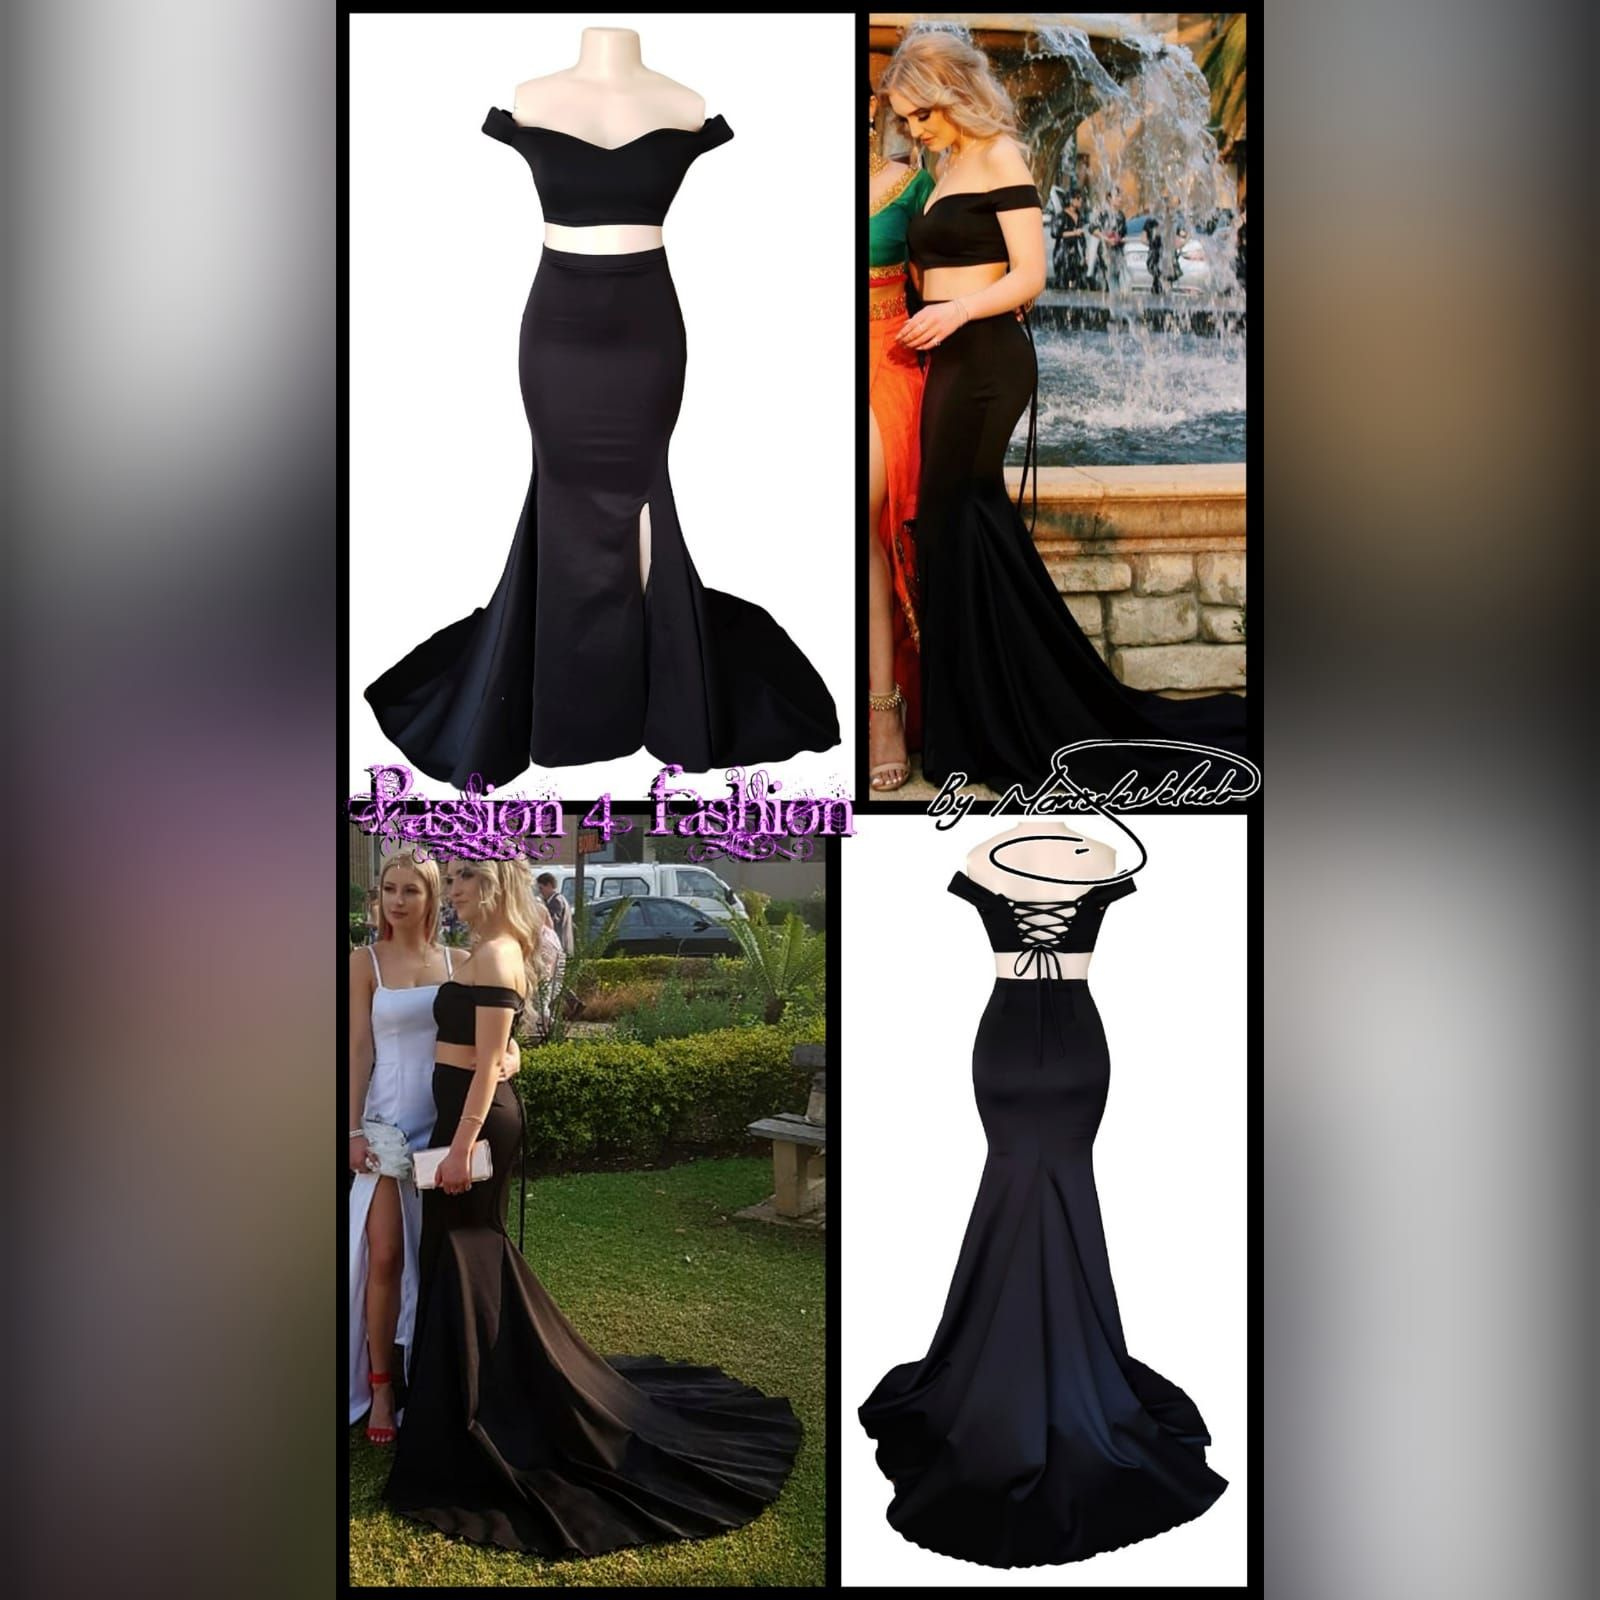 2 Piece Black Off Shoulder Prom Dress With A Crop Top Prom Dresses Dresses Formal Wear Dresses [ 1600 x 1600 Pixel ]